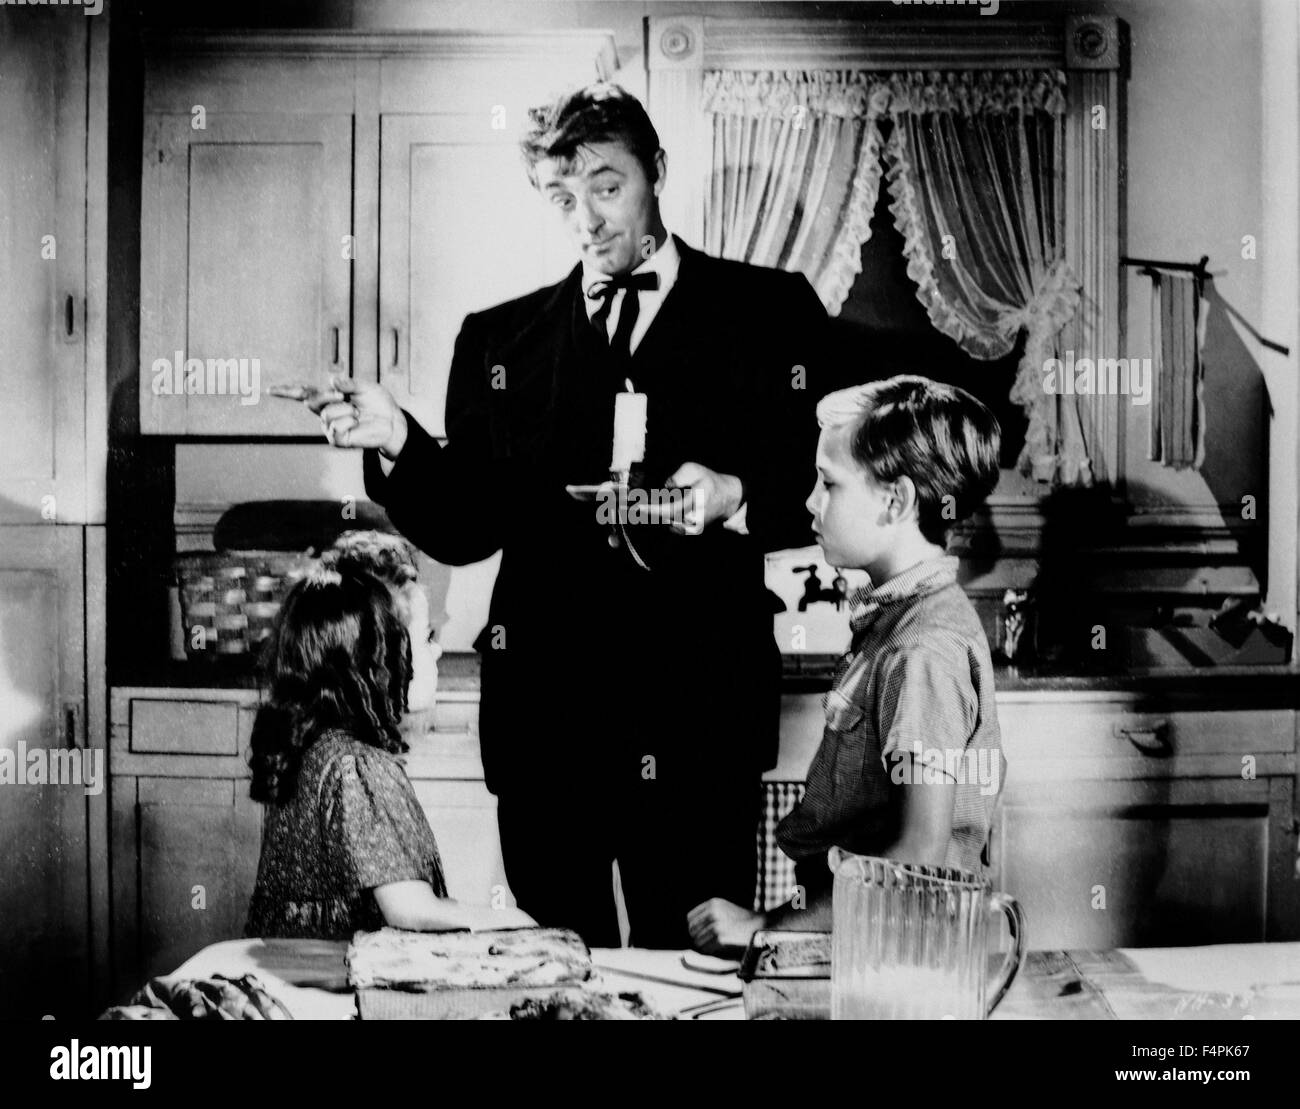 Sally Jane Bruce, Robert Mitchum and Billy Chapin / The Night of the Hunter / 1955 directed by Charles Laughton - Stock Image